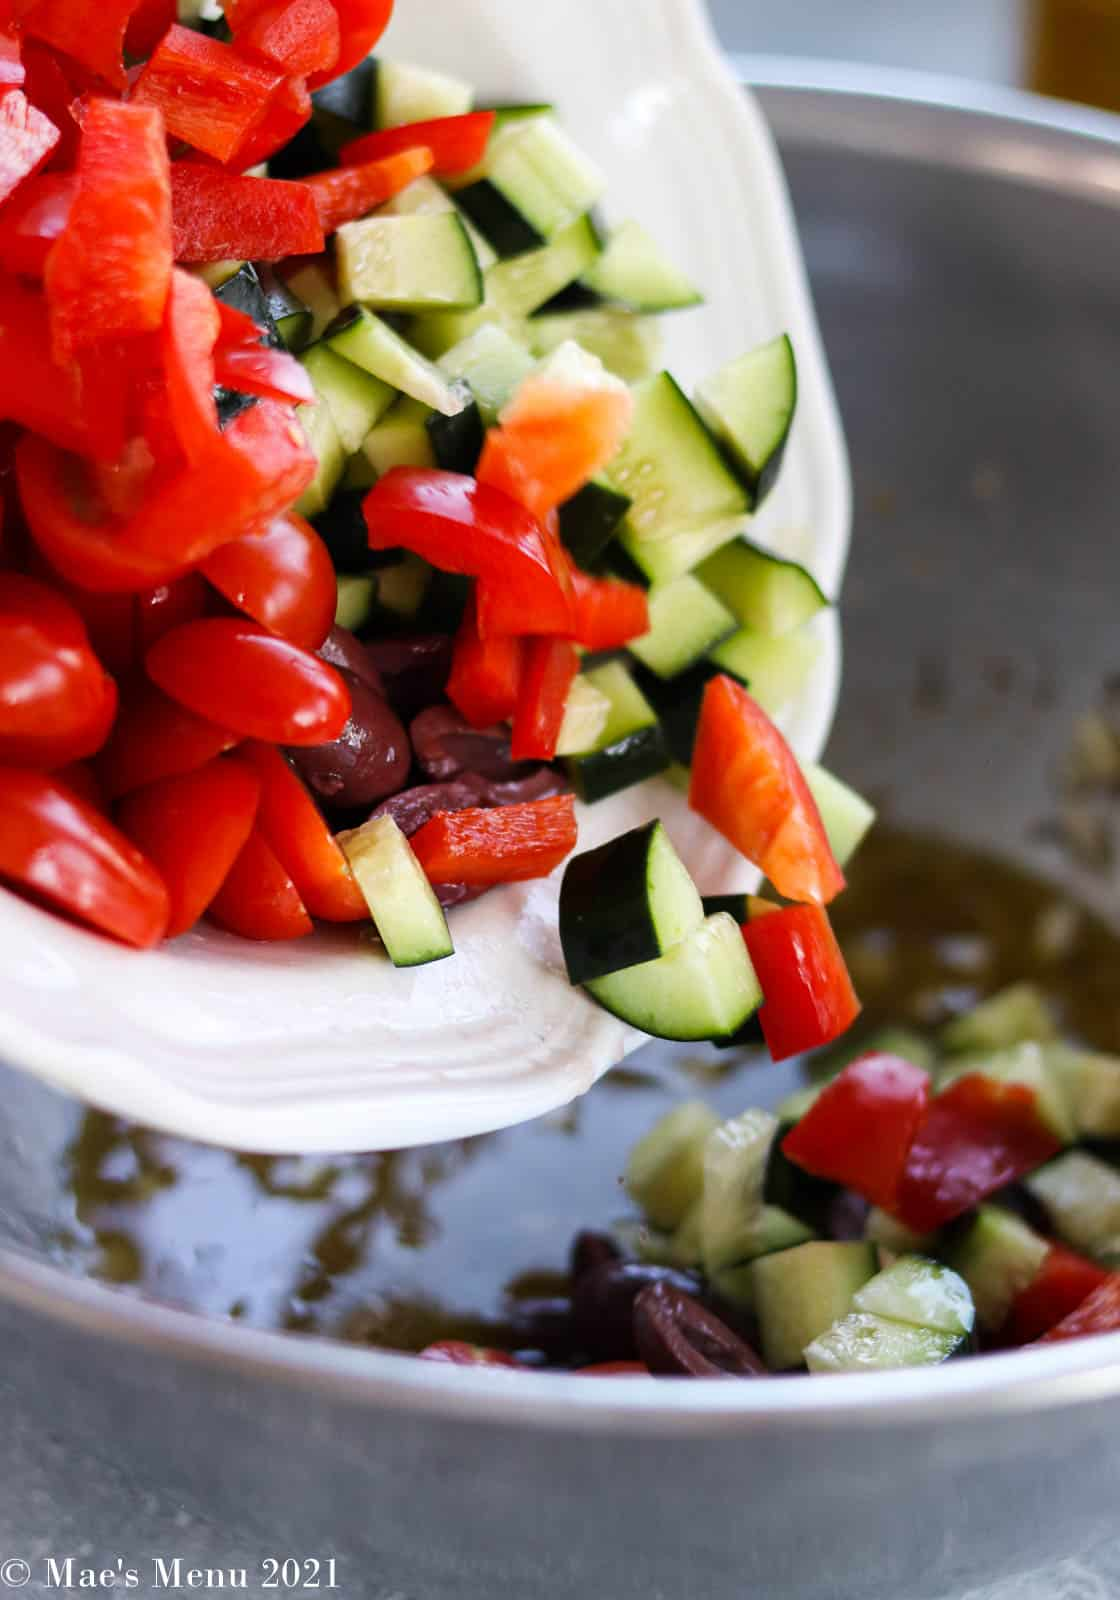 Adding the chopped vegetables to the greek salad dressing